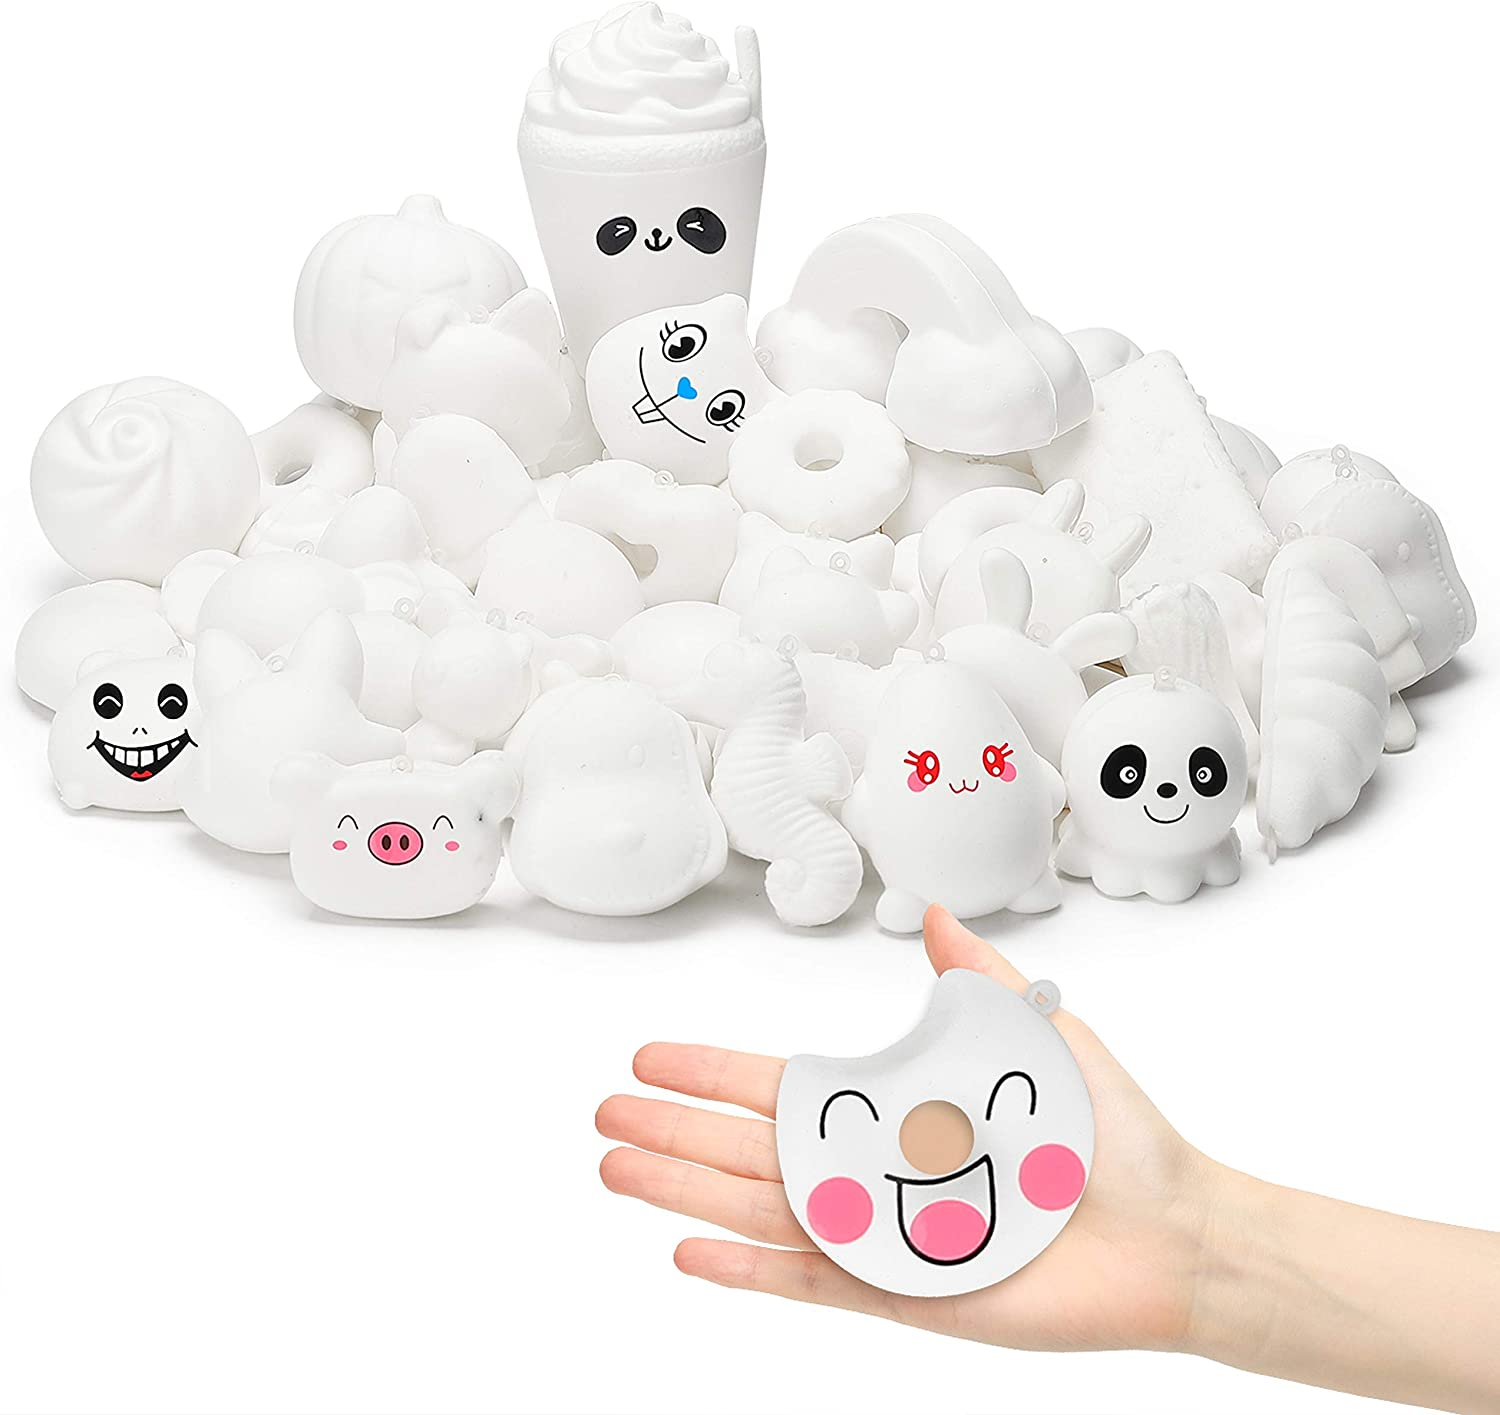 WATINC Random 50Pcs DIY Squeeze Toys Bulk, Slow Rising Scented Toy, Lovely Novelty Mini Animal Food Toys for Squeezing, Keychains Phone Straps with Bonus Random Stickers